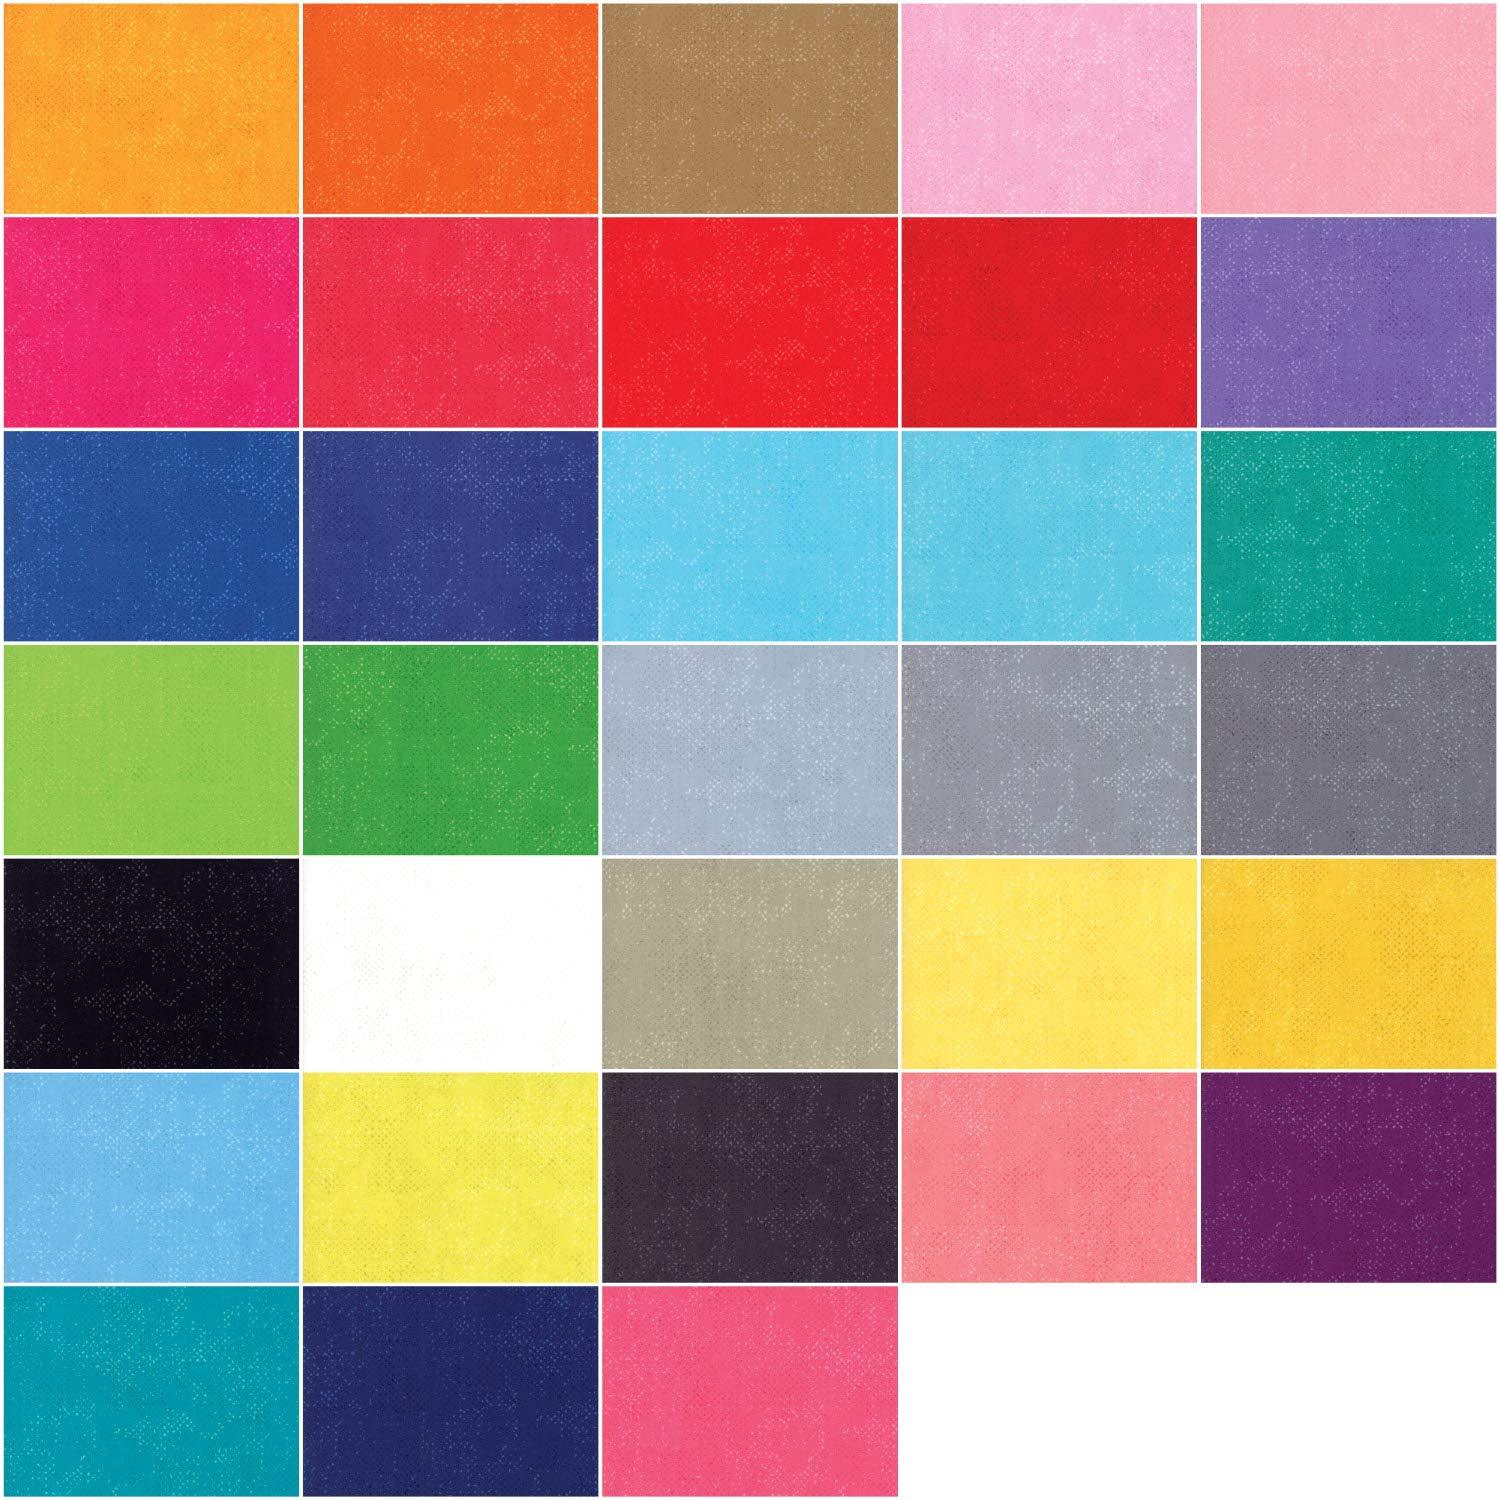 Spotted Charm Pack by Brigitte Heitland for Zen Chic; 42-5 Inch Precut Fabric Quilt Squares